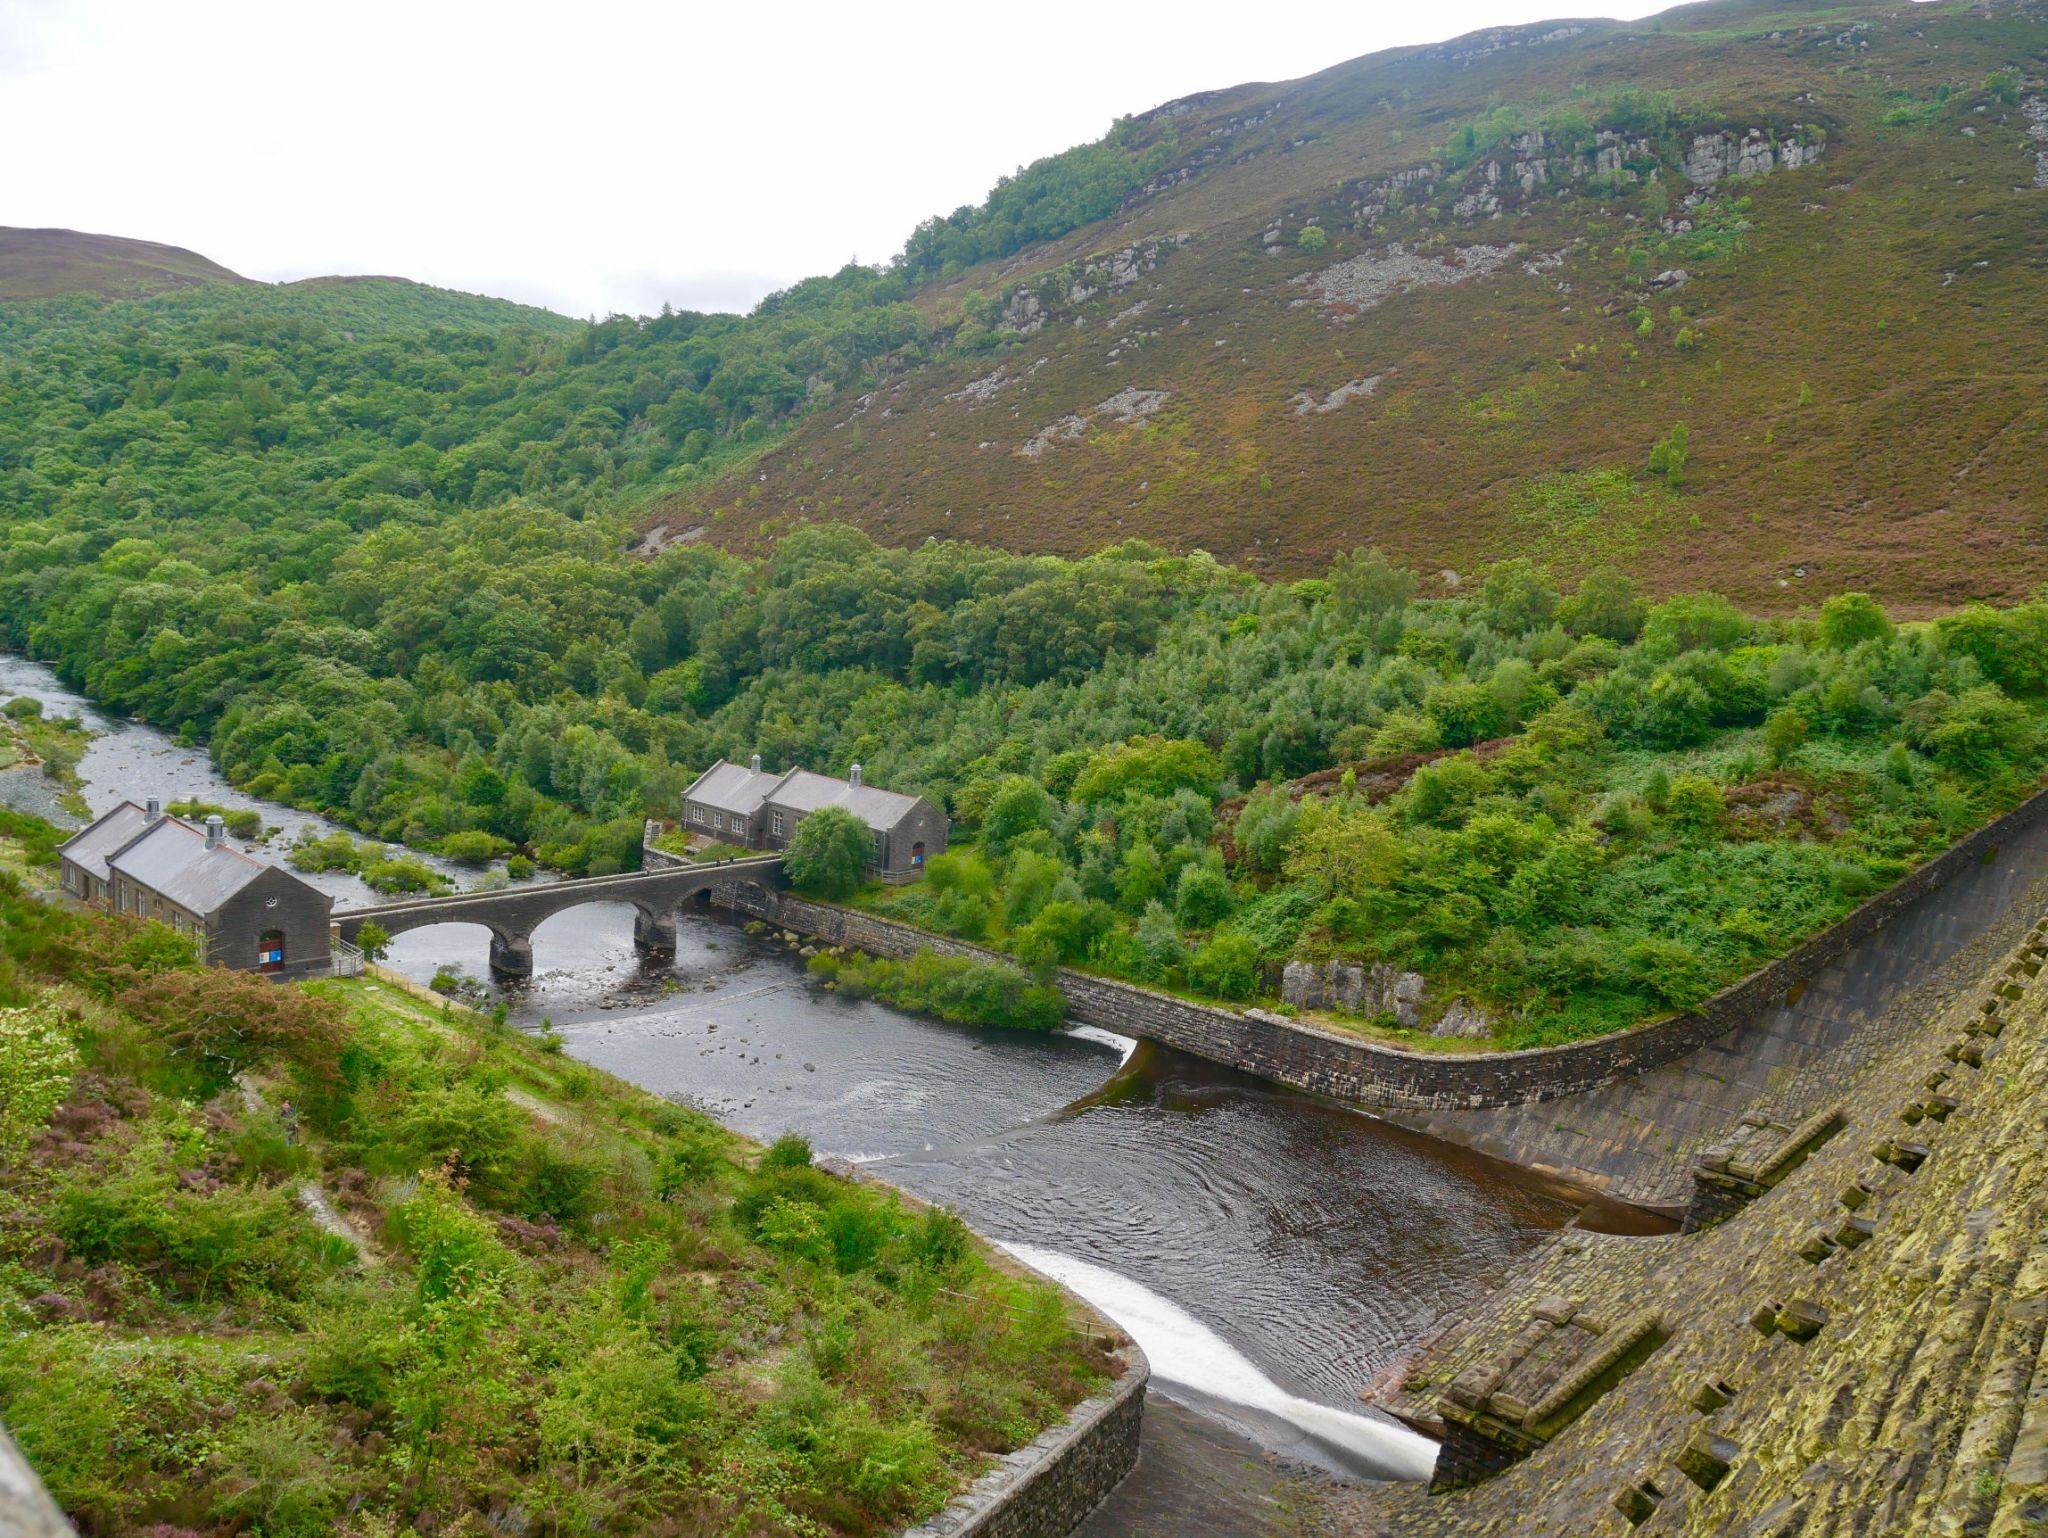 The beginning of the Elan Valley Trail at Caban Coch Dam